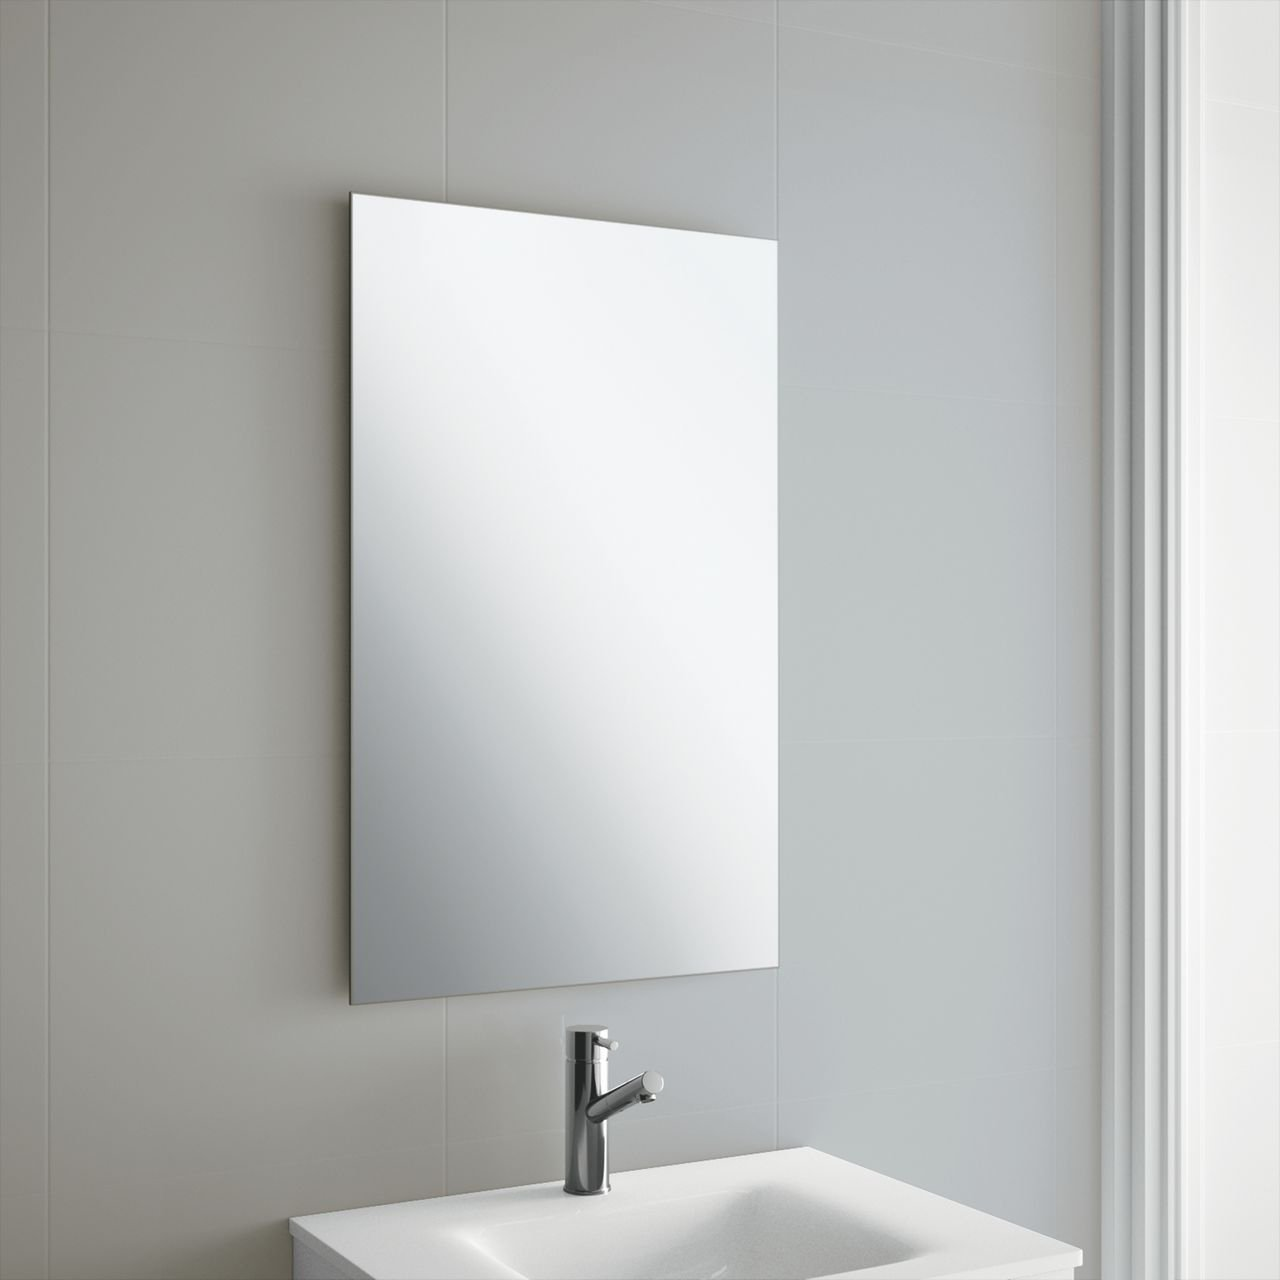 50 x 70cm Rectangle Bathroom Mirror, Unframed, Frameless Bathroom Mirror with Wall Hanging Fixing Hardware